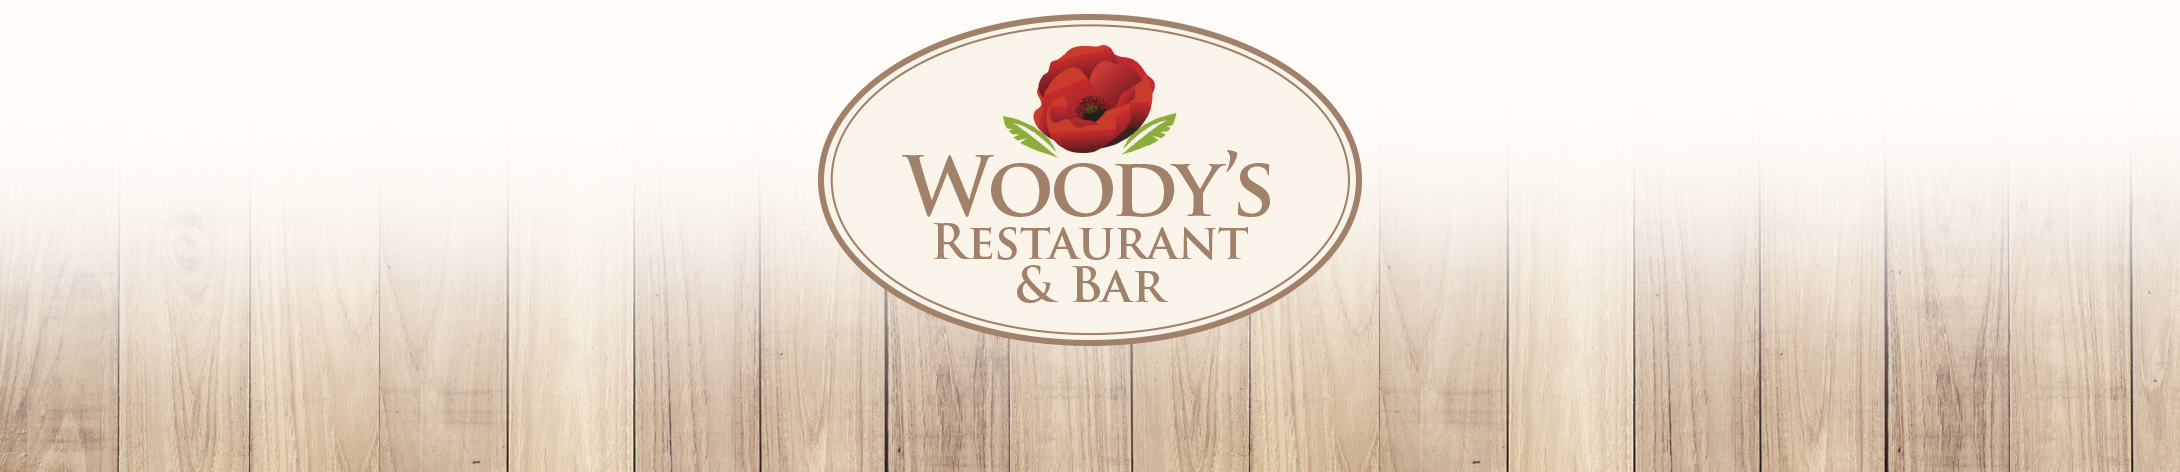 Woody's Restaurant and Bar